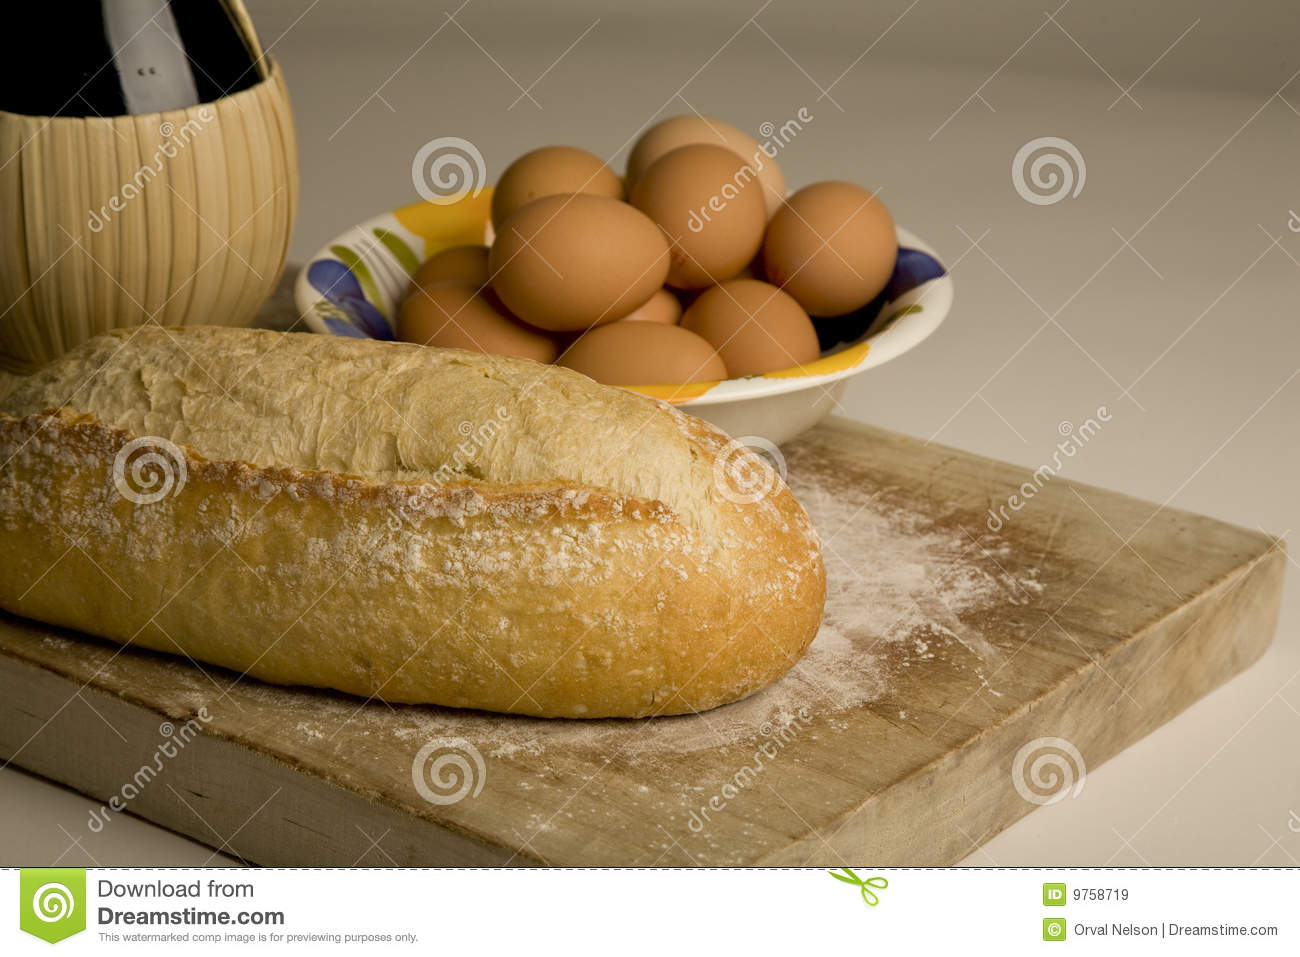 Artisan Bread On Cutting Board  Royalty Free Stock Images   Image